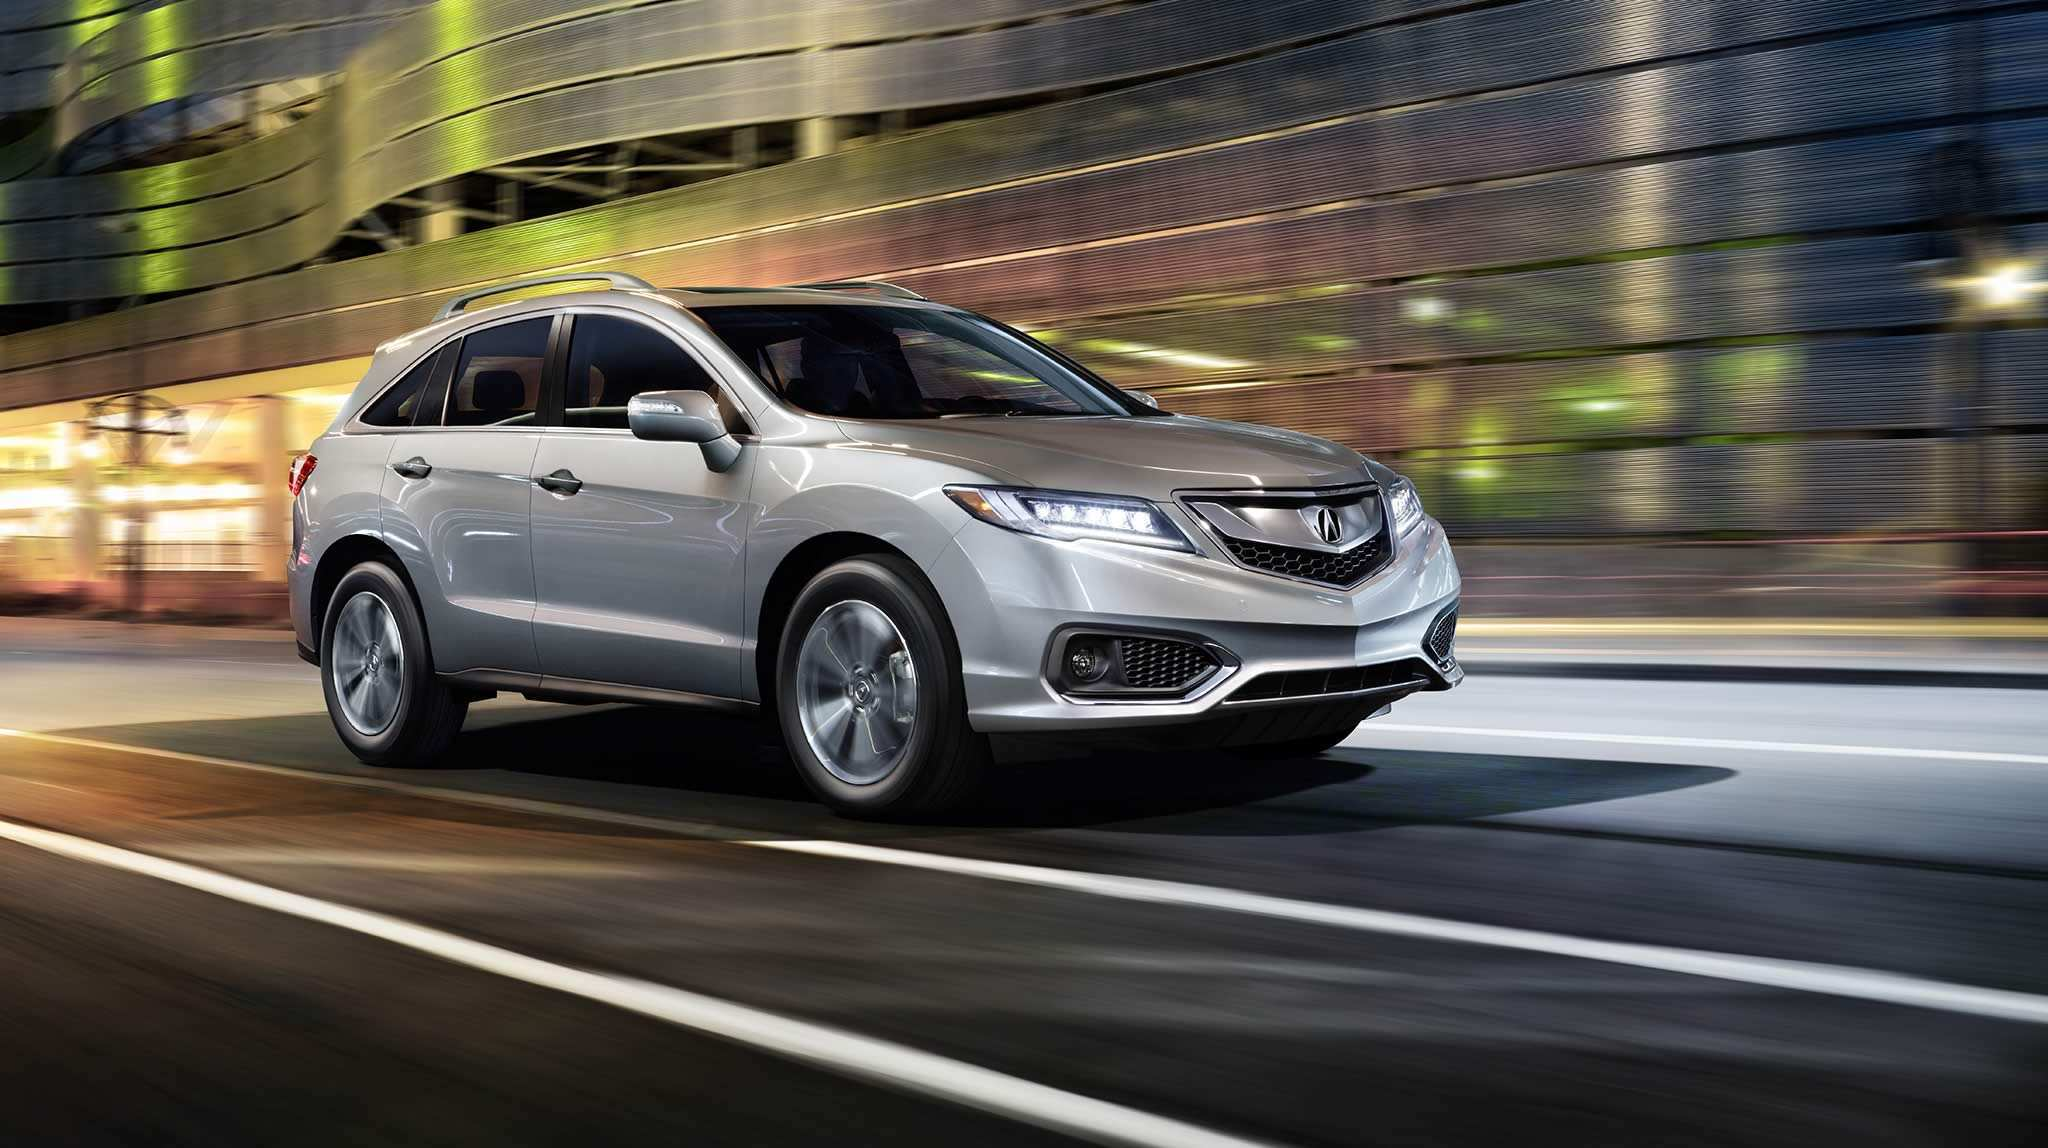 85 All New 2019 Acura Rdx Rumors Specs and Review